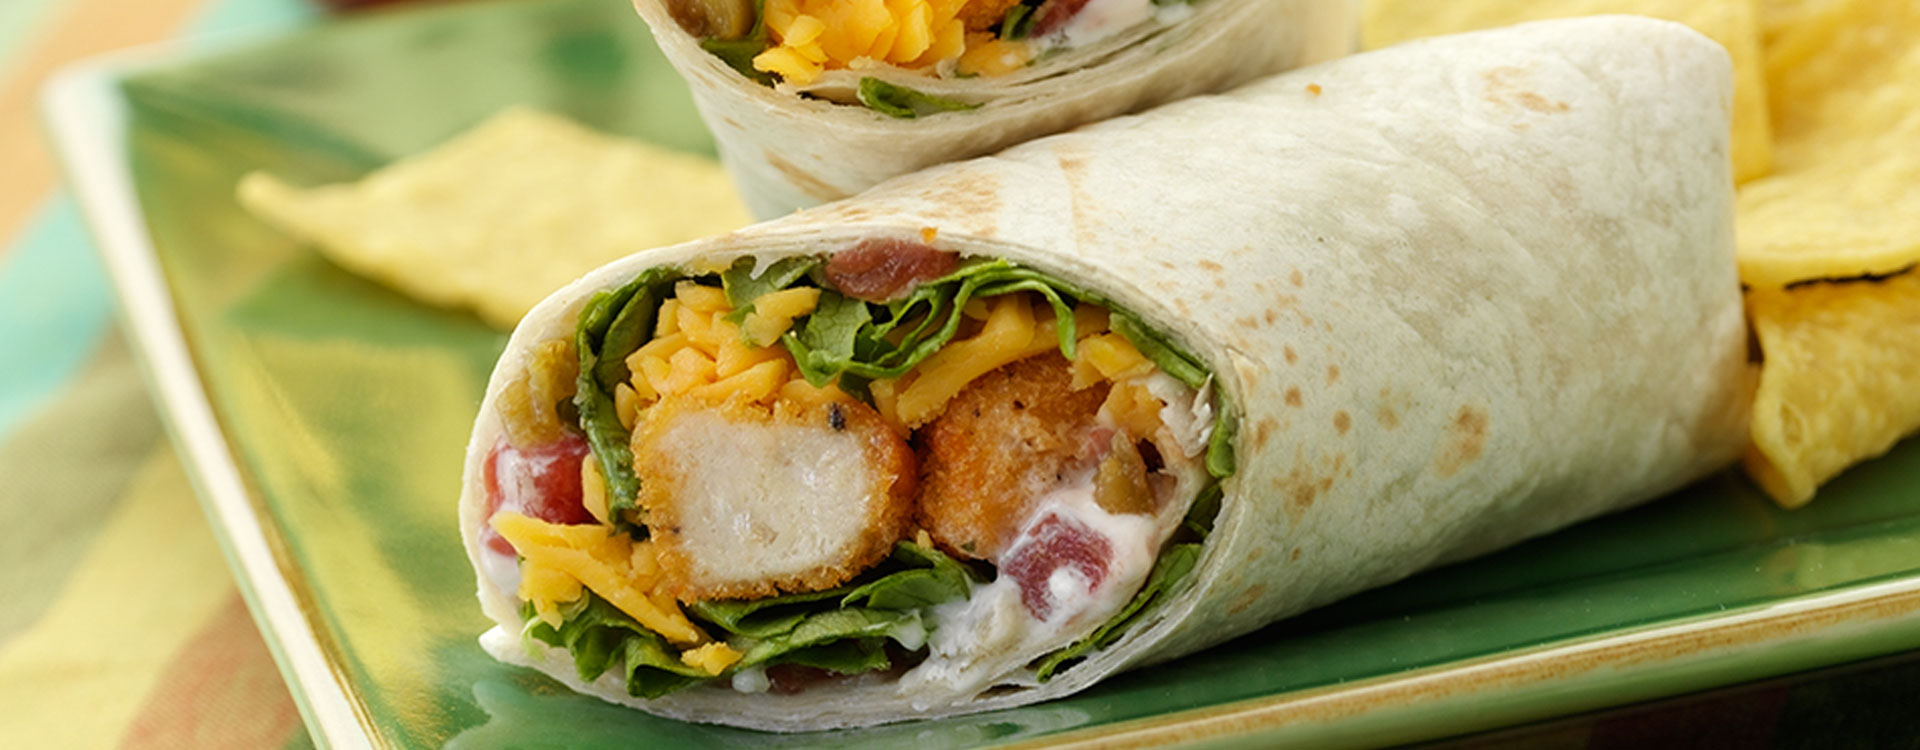 Hero - Spicy Crunchy Chicken Wraps